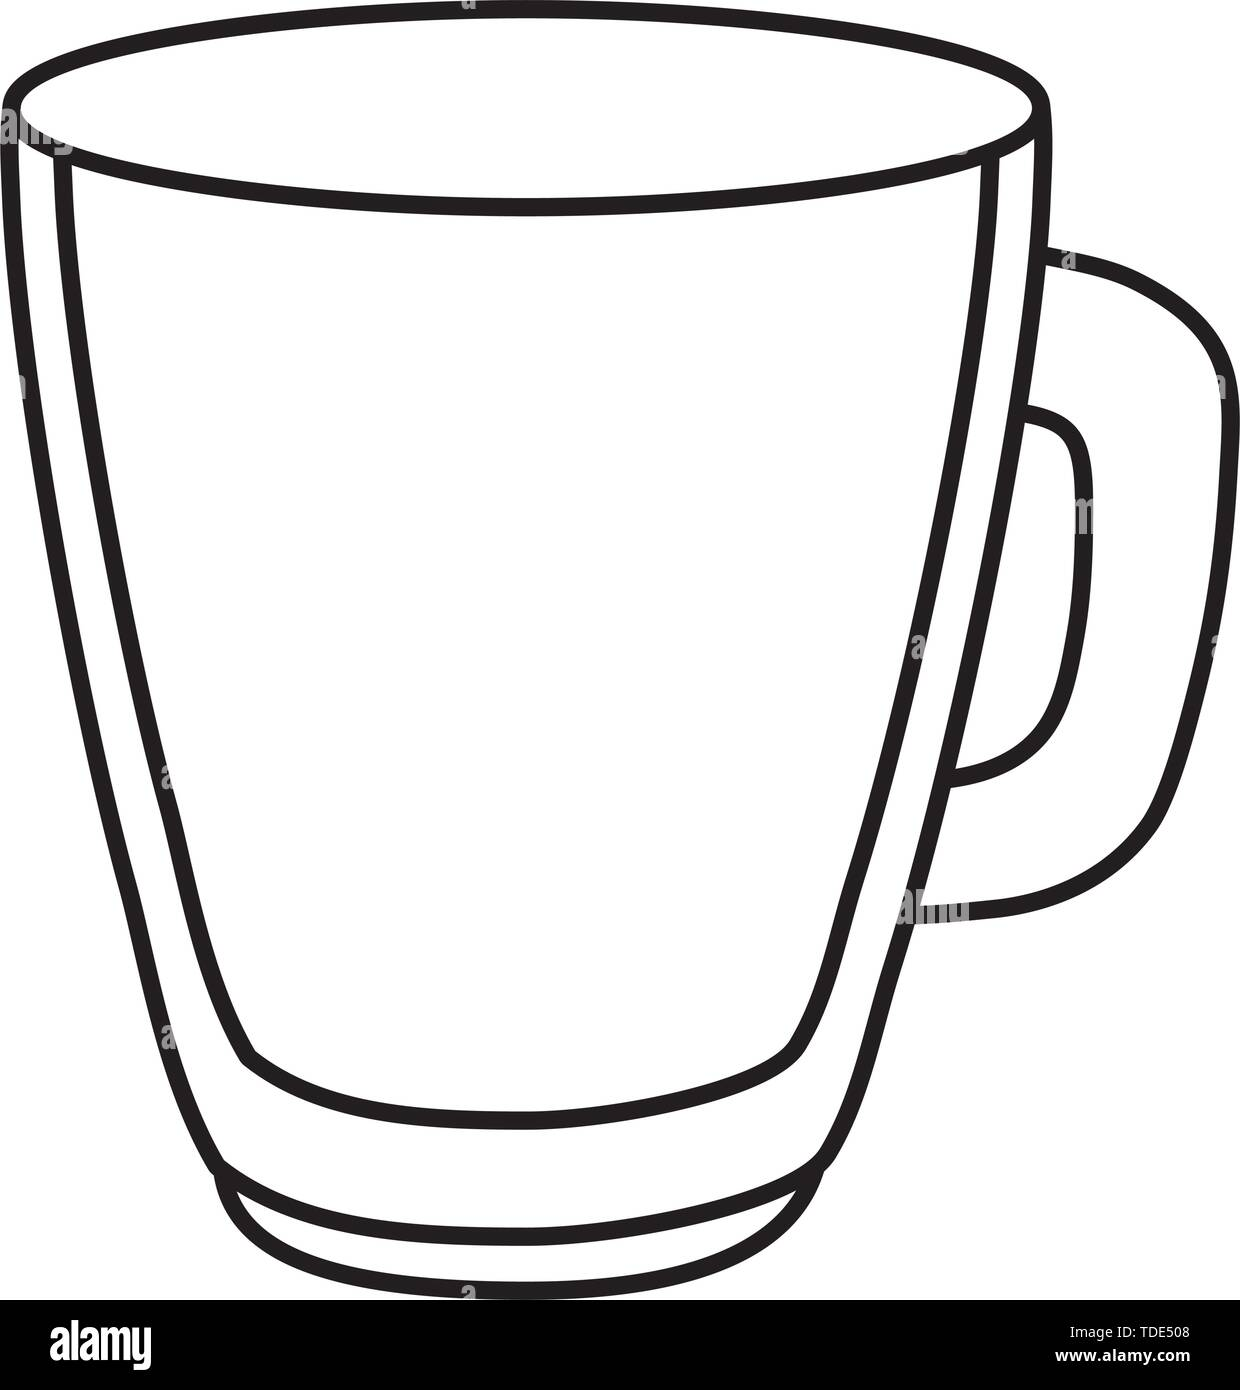 glass cup cartoon vector illustration graphic design - Stock Image